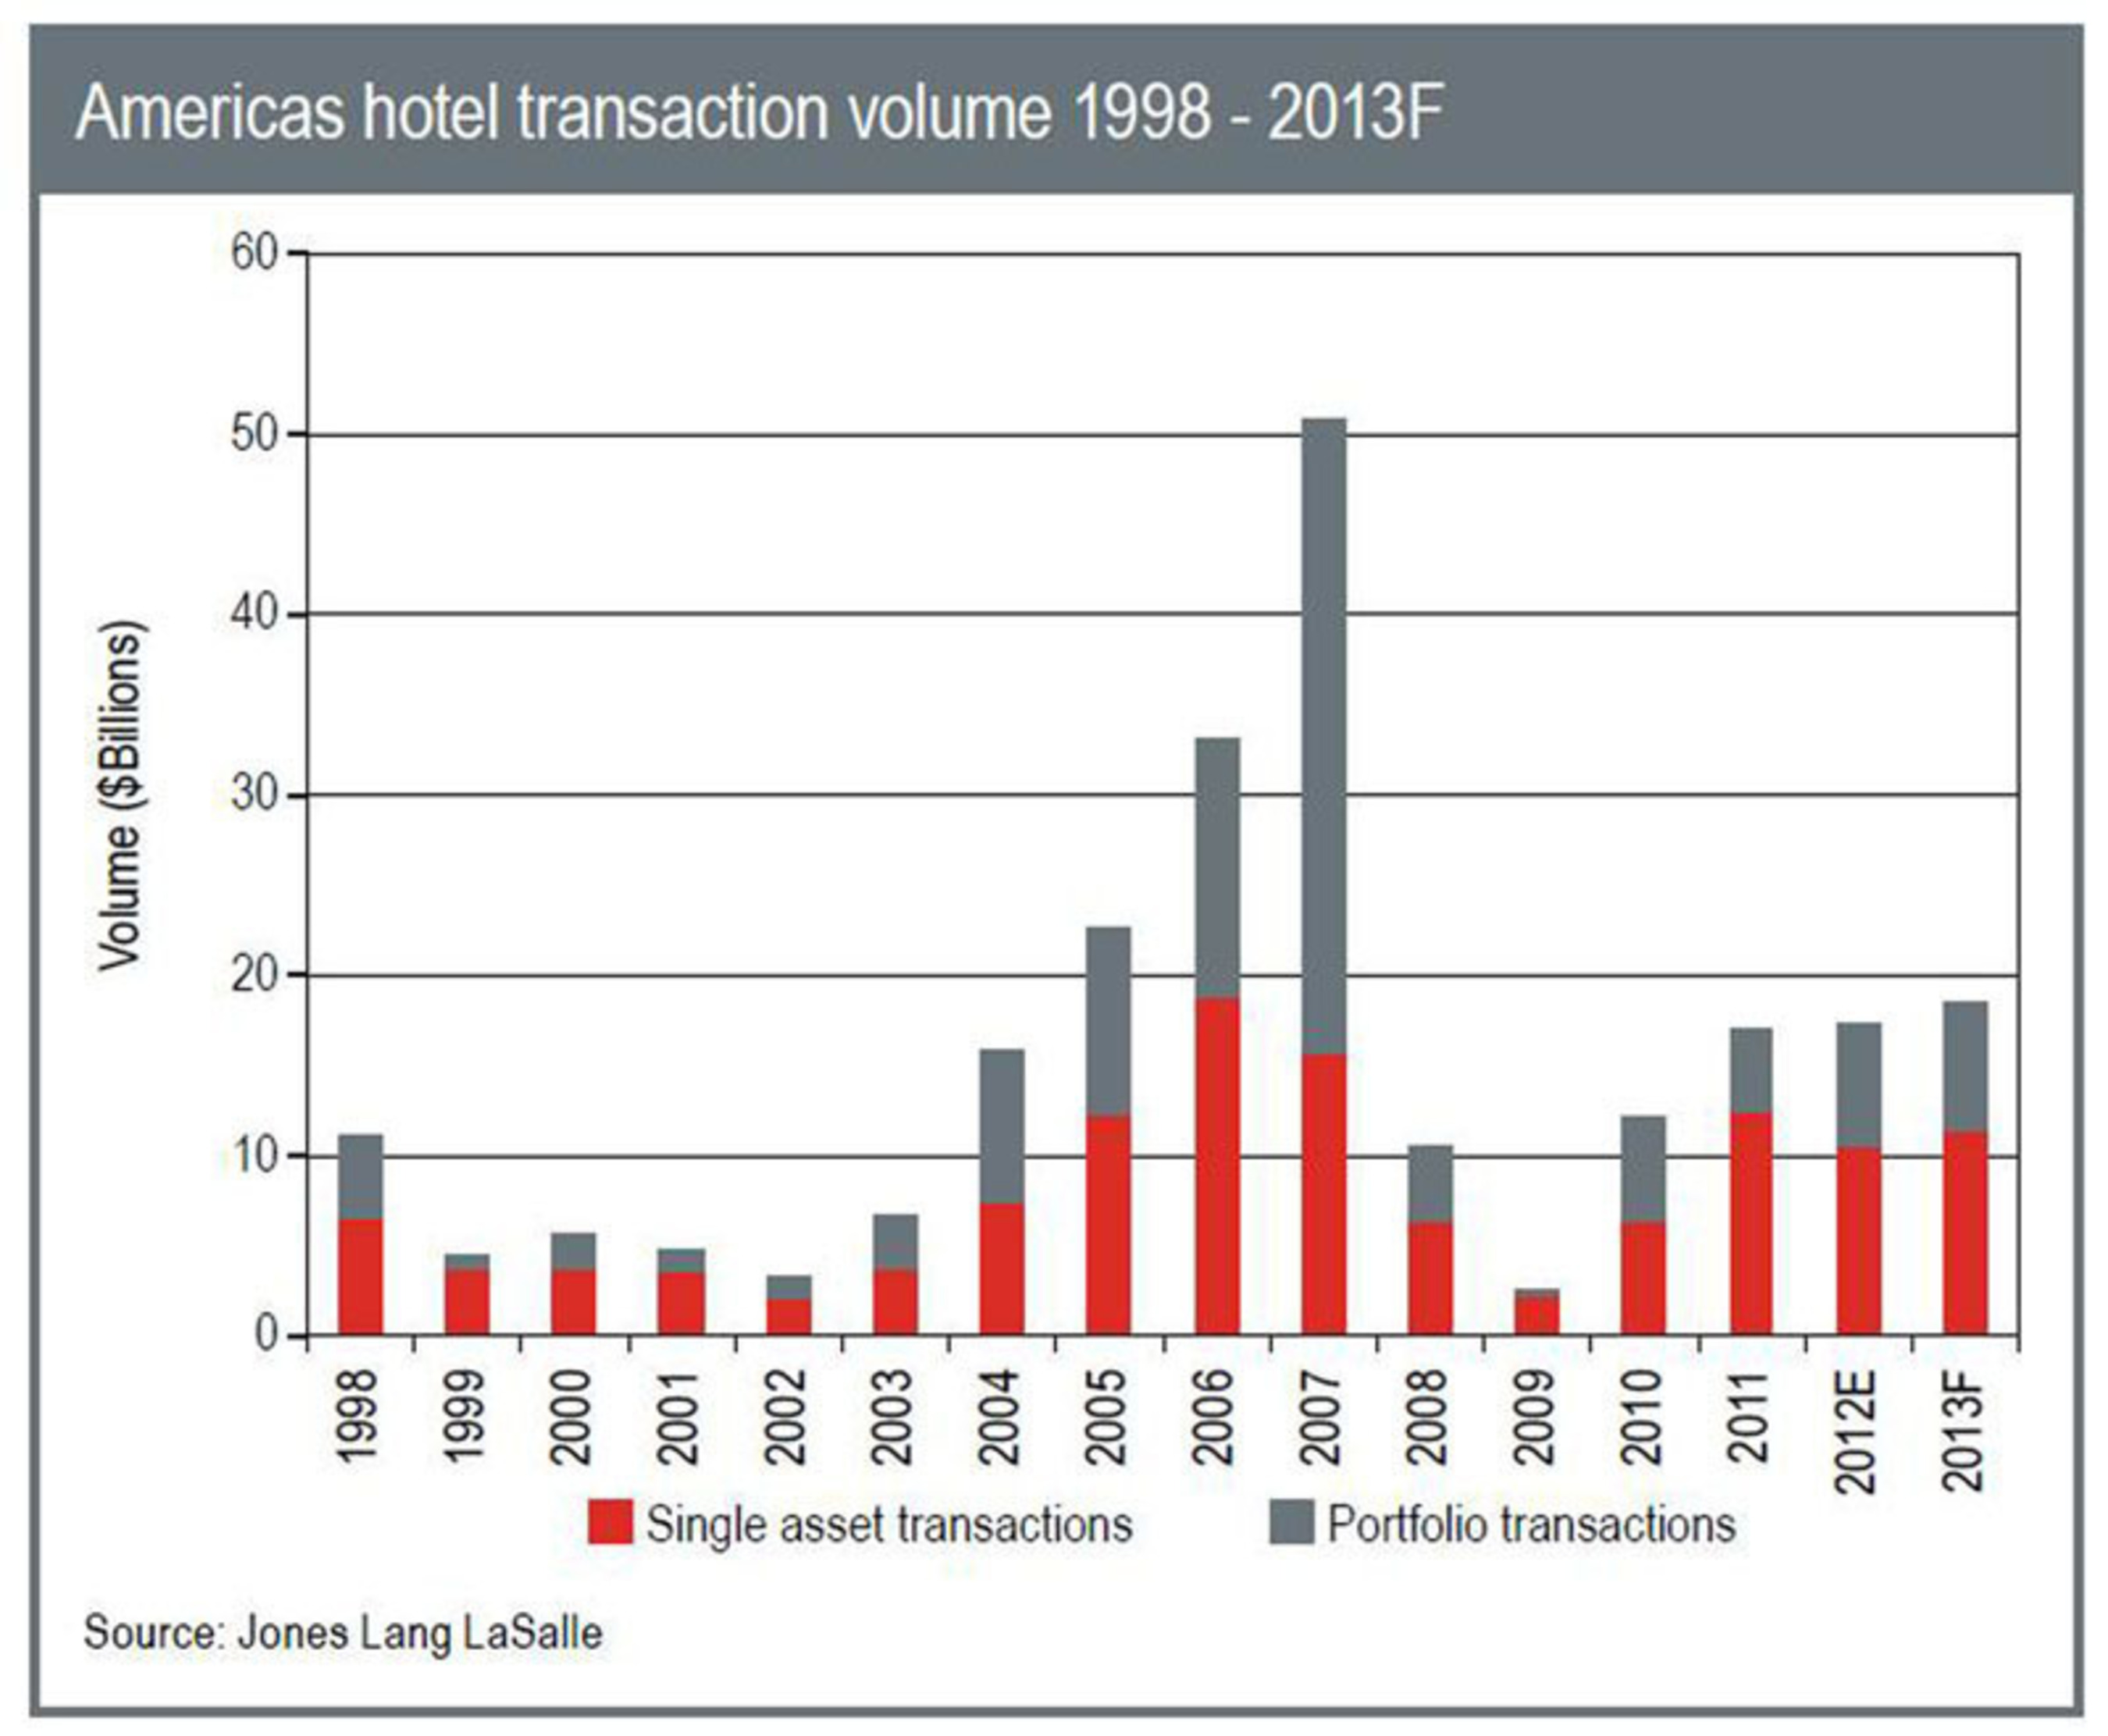 Americas hotel transaction volume 1998 - 2013F.  (PRNewsFoto/Jones Lang LaSalle)